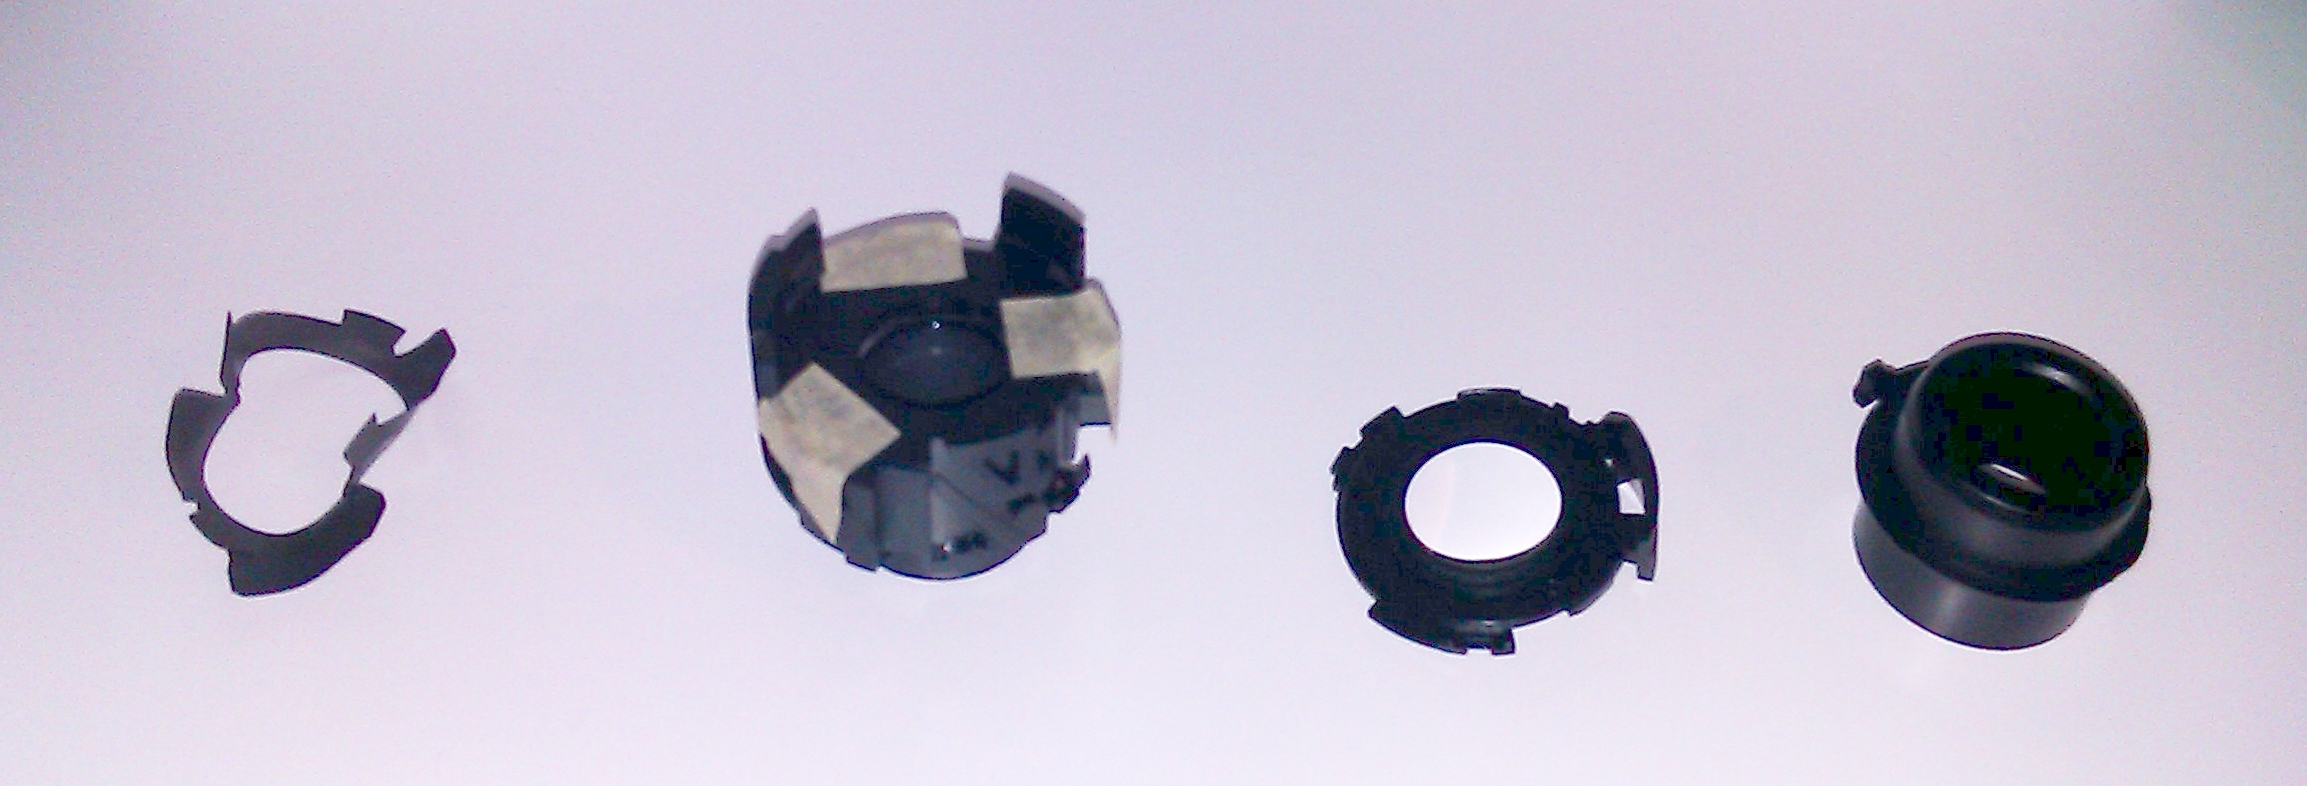 Picture of Dissasemble the Lens and Aperture